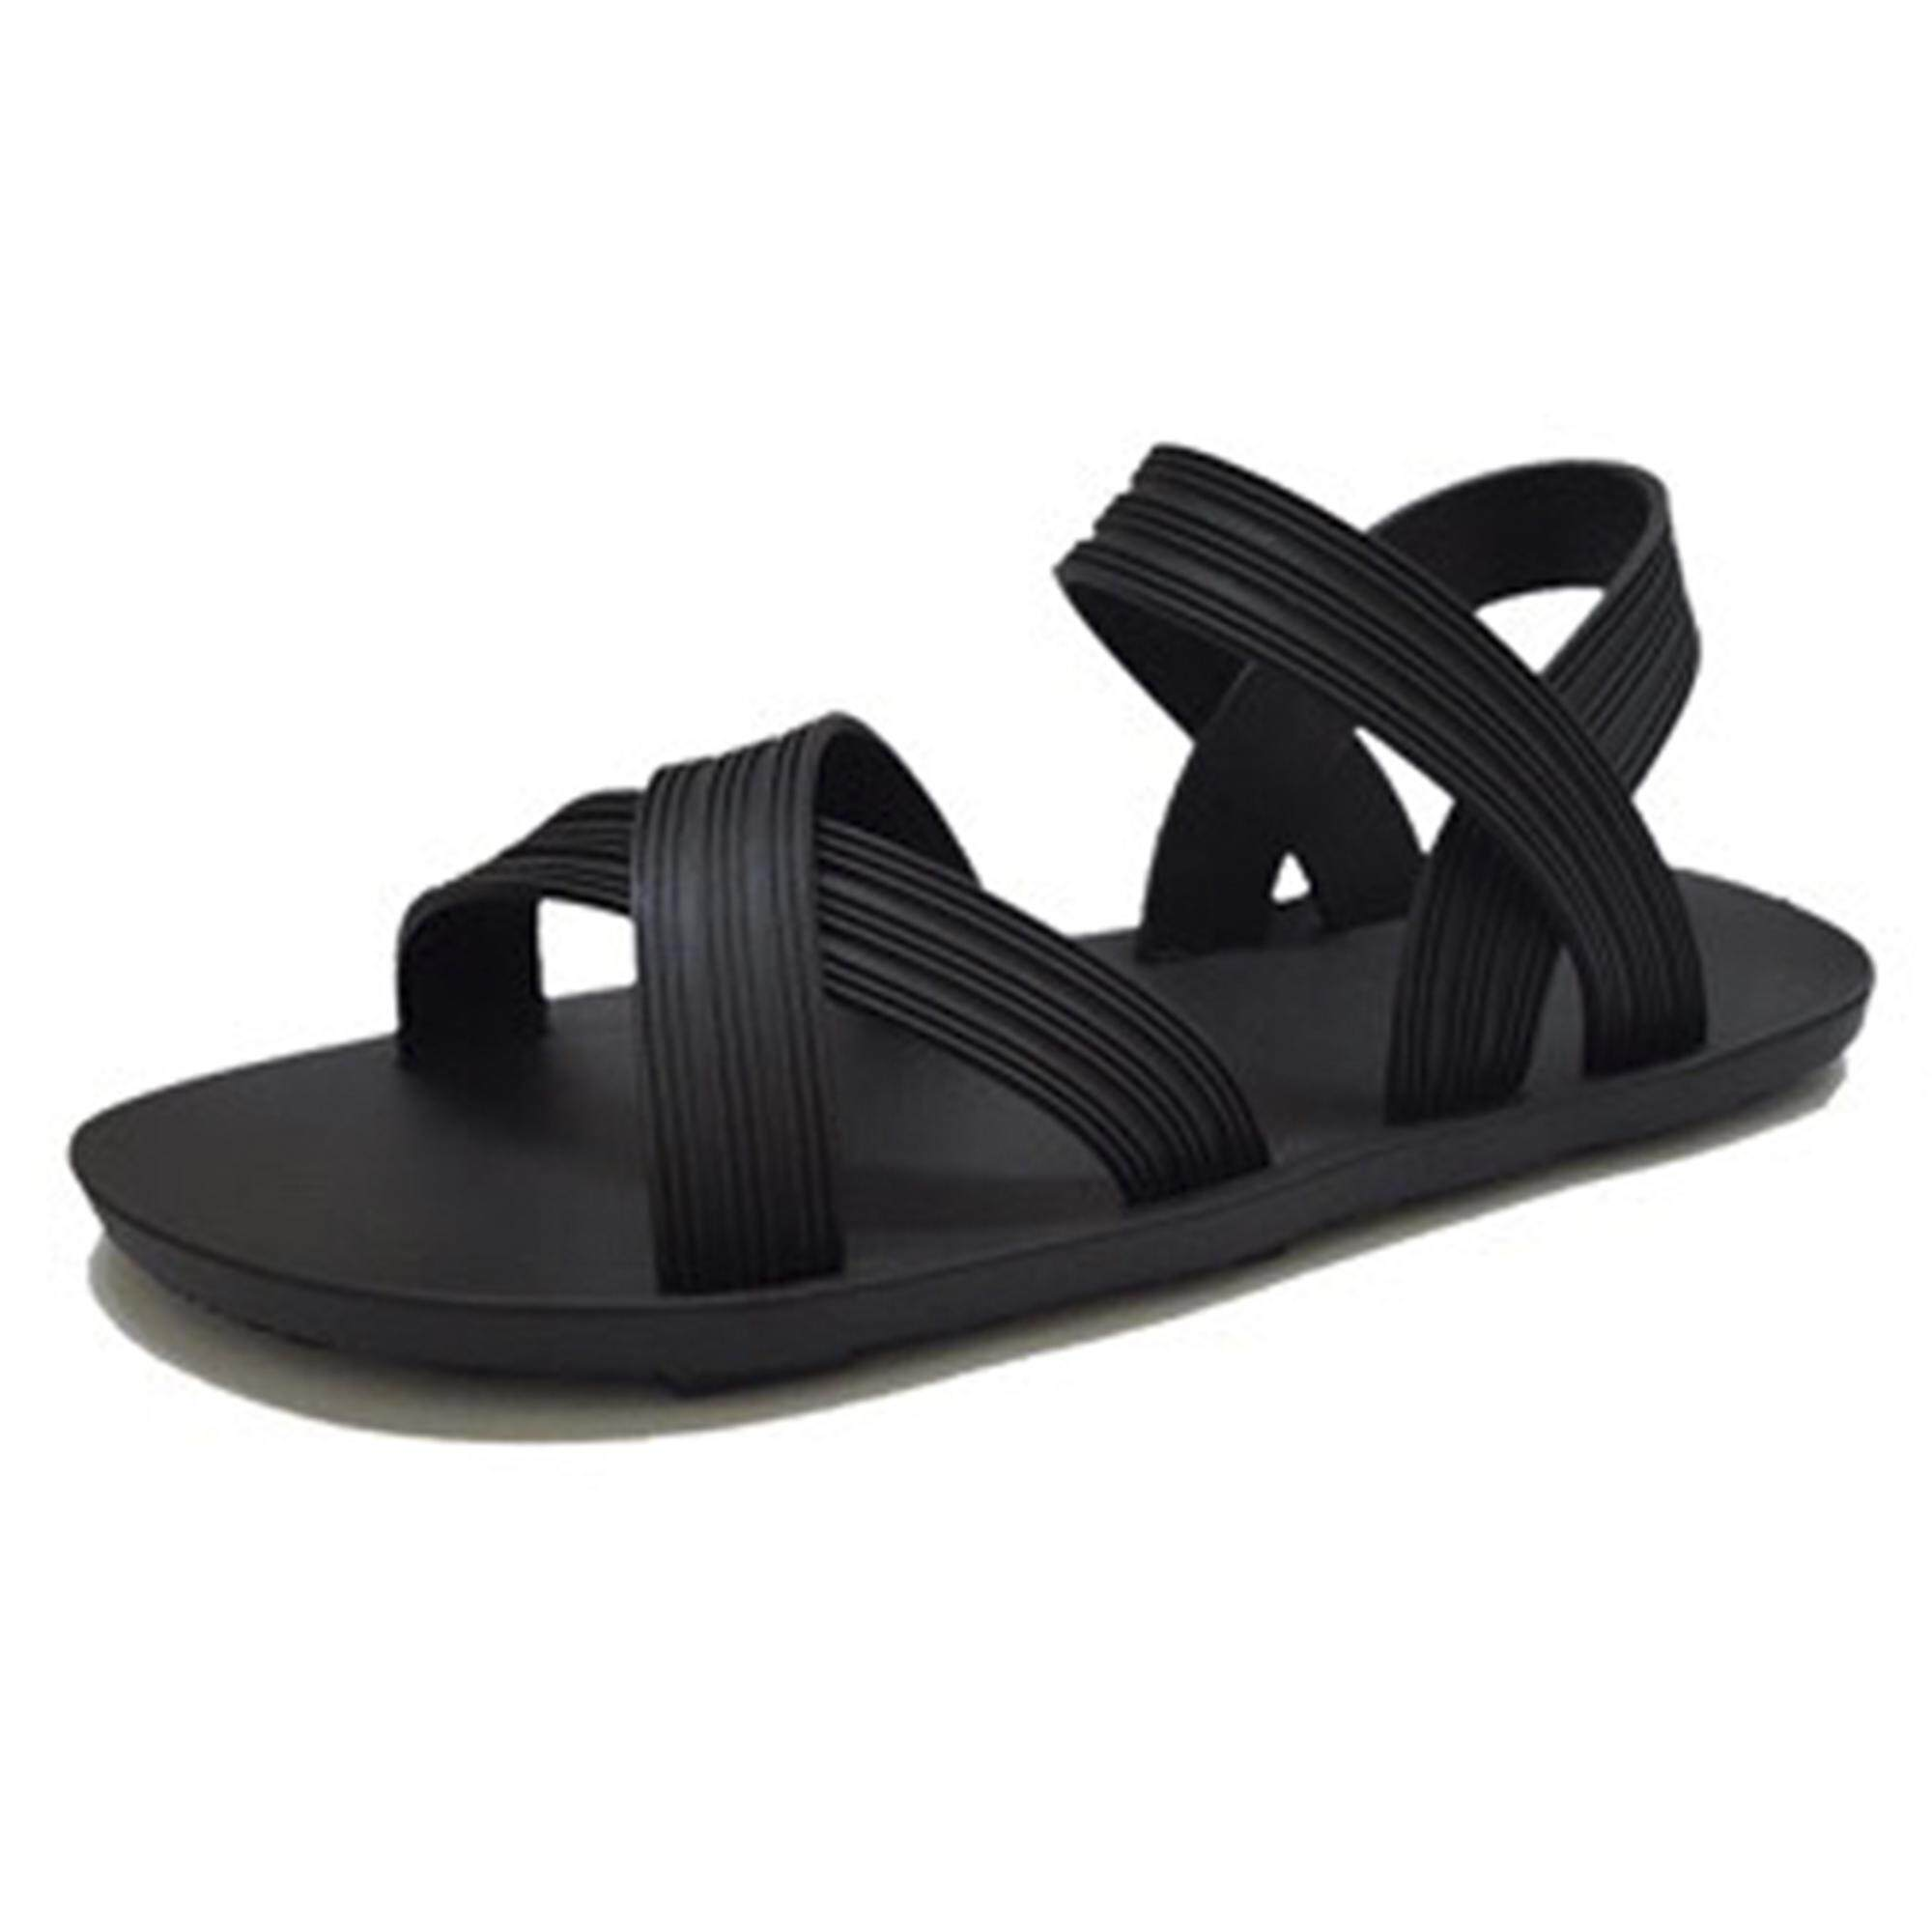 7a46d6d43289 Buy Sandals for Women Online at Best Prices in Malaysia